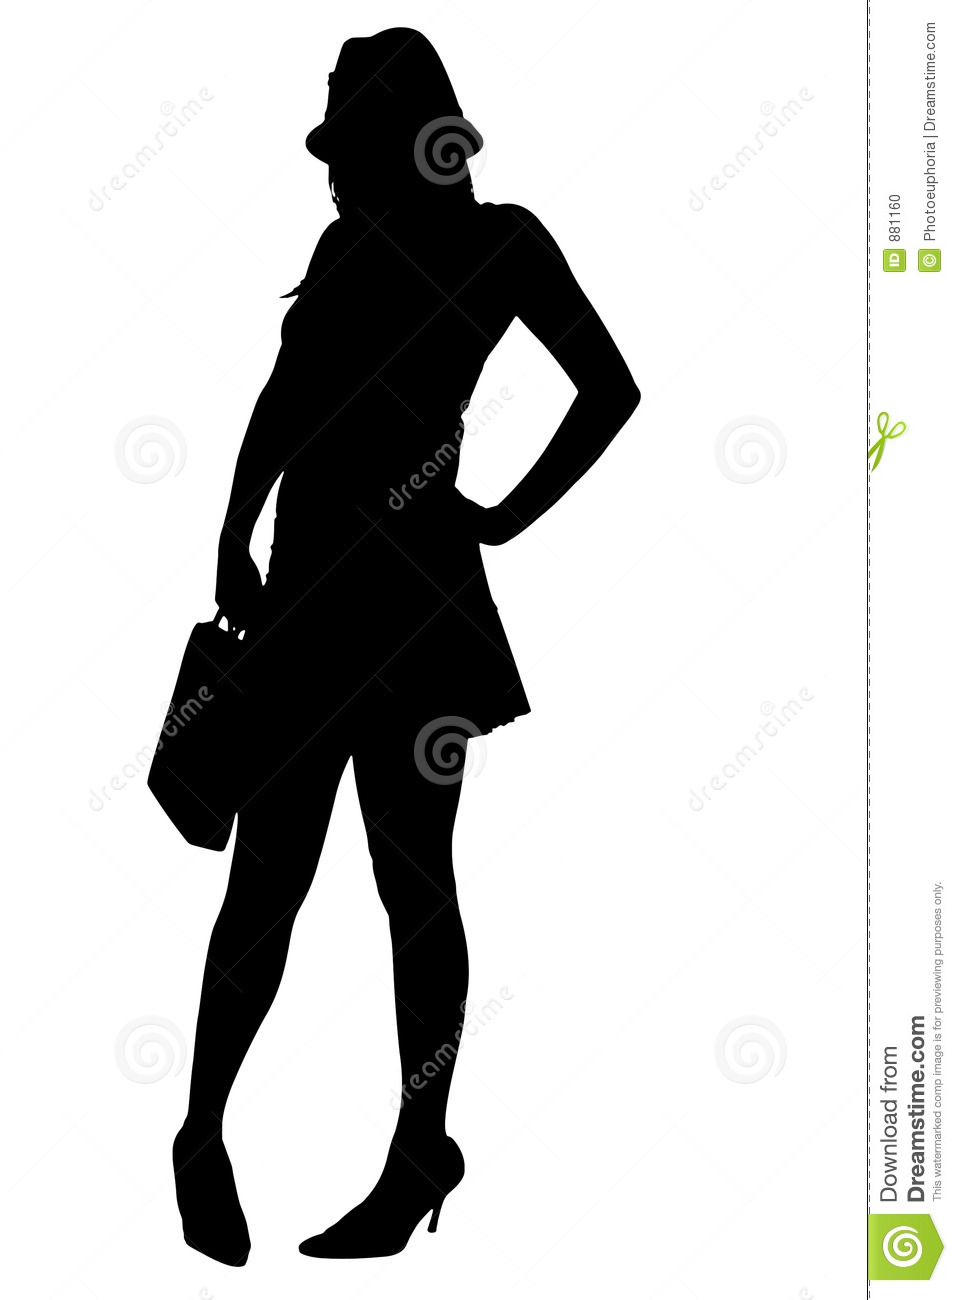 Sexy lady silhouette images